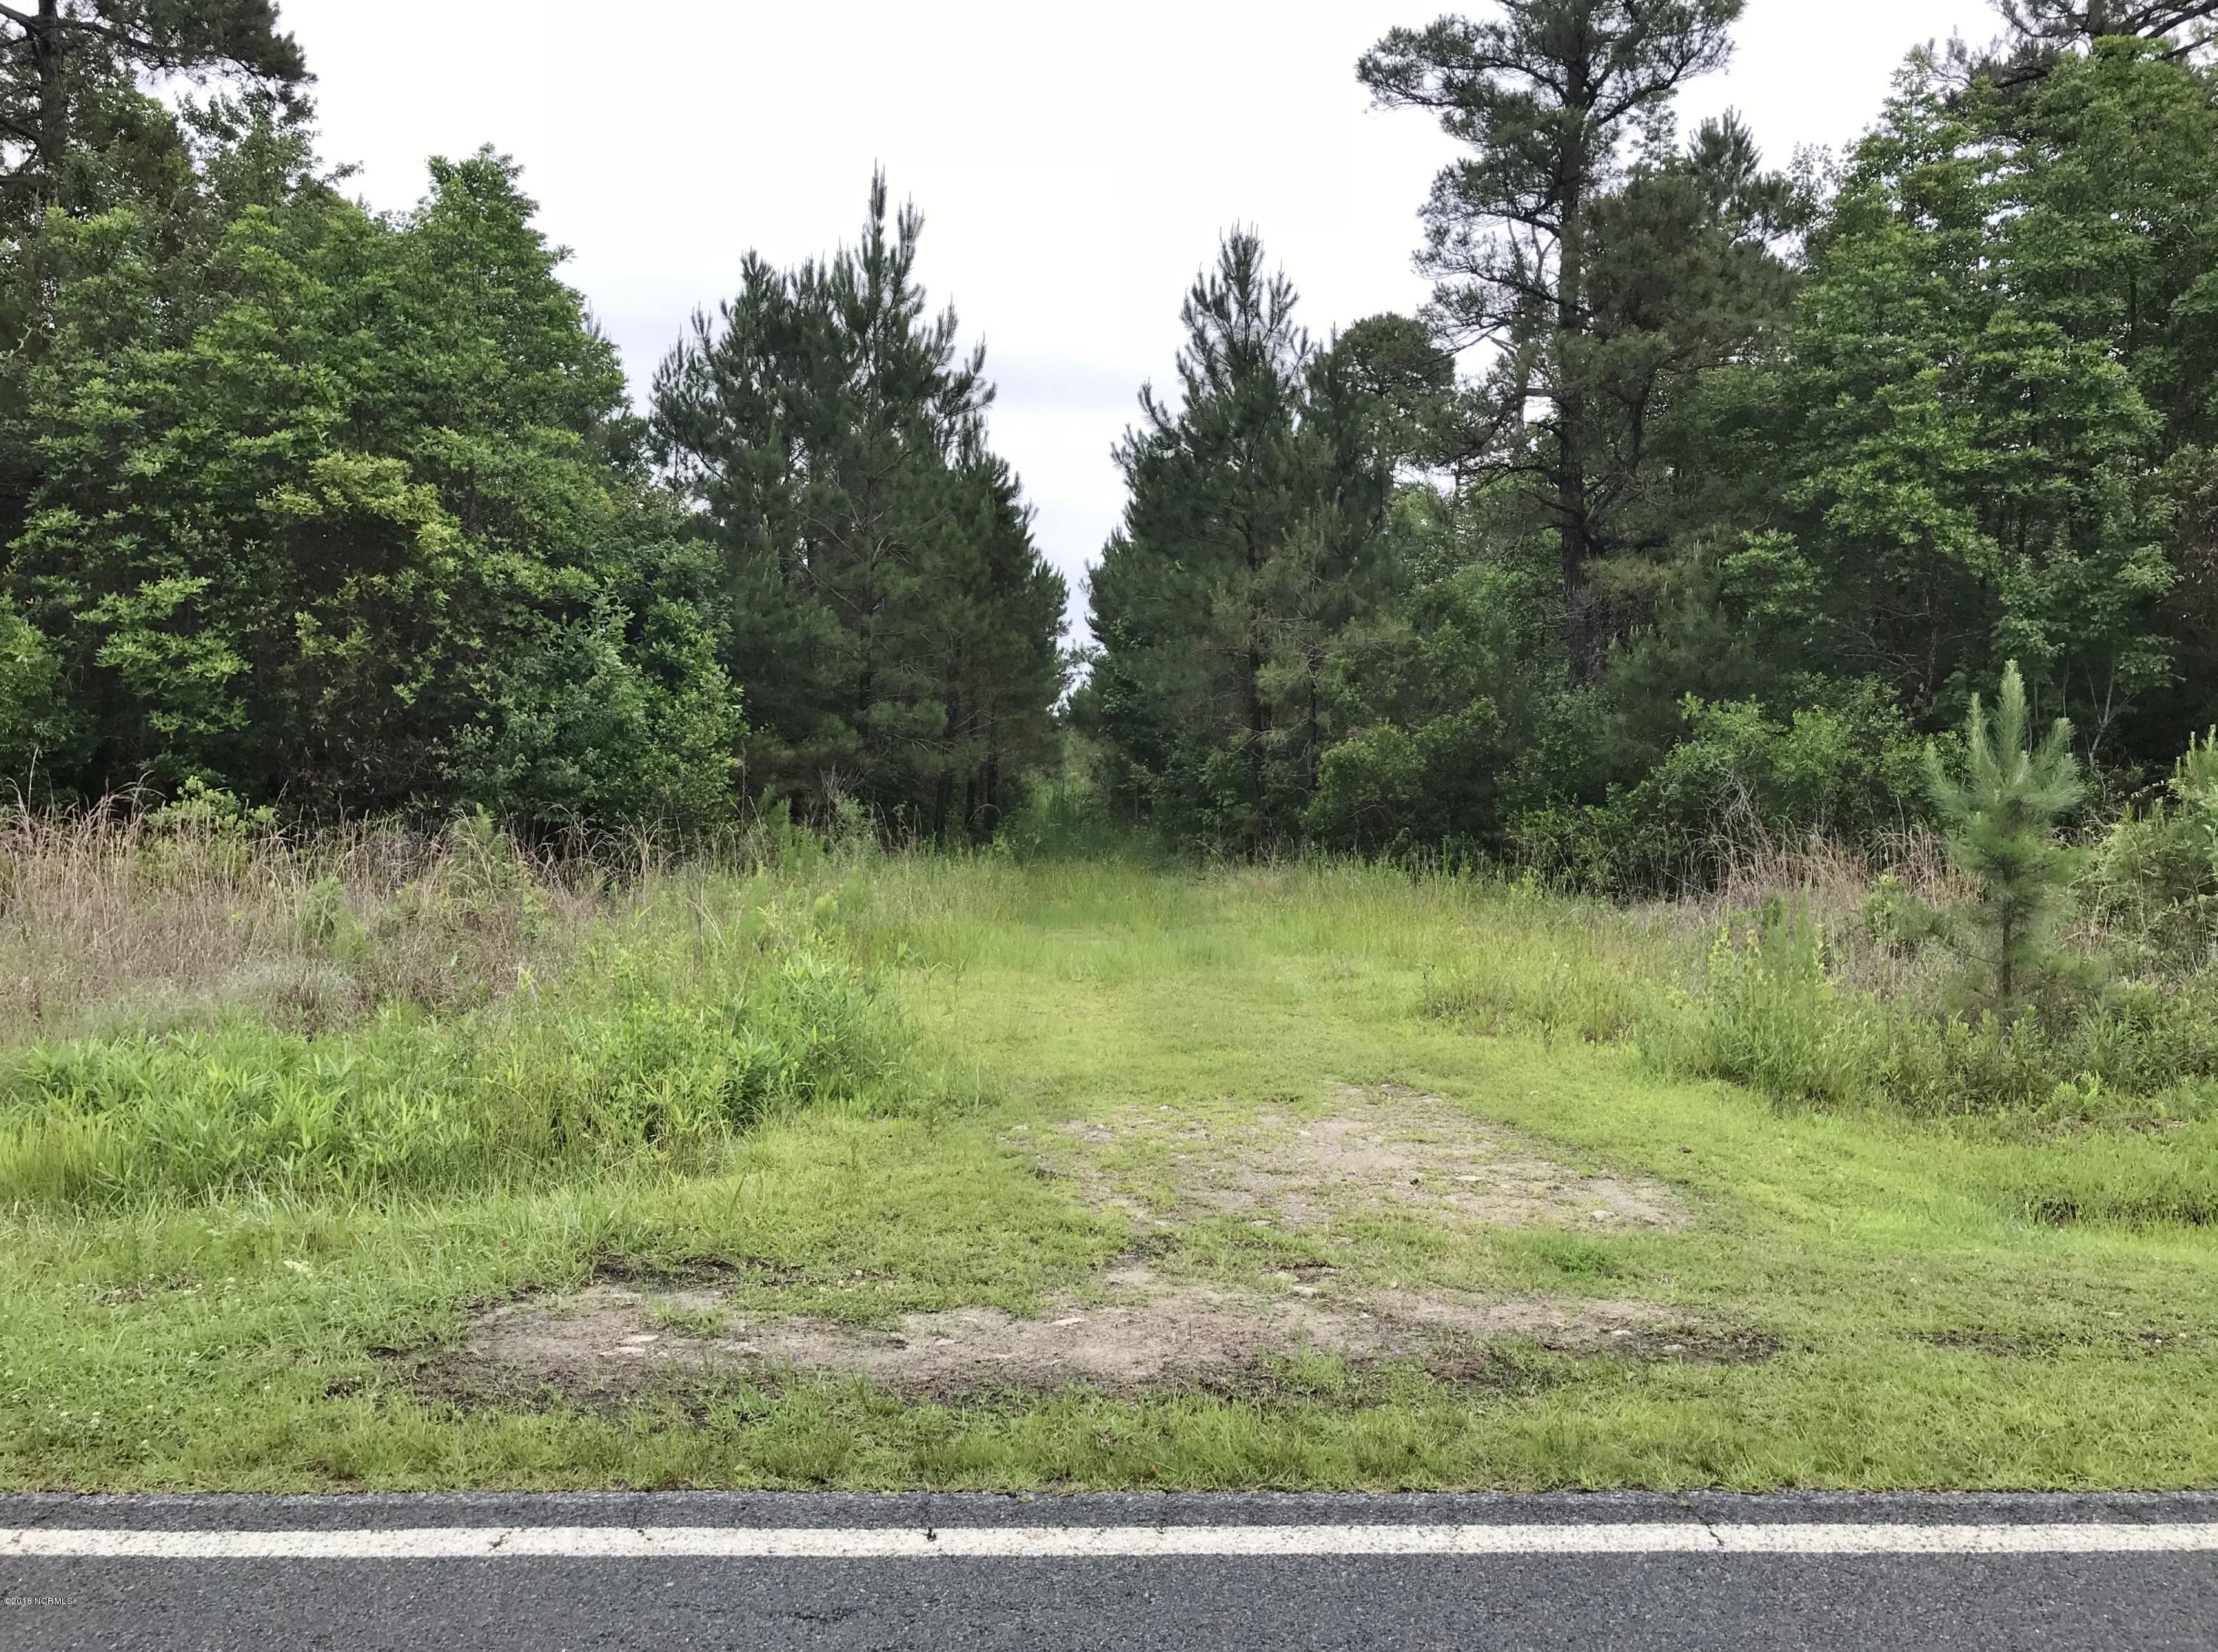 Tbd Hwy 258, Trenton, North Carolina 28585, ,Undeveloped,For sale,Hwy 258,100031792